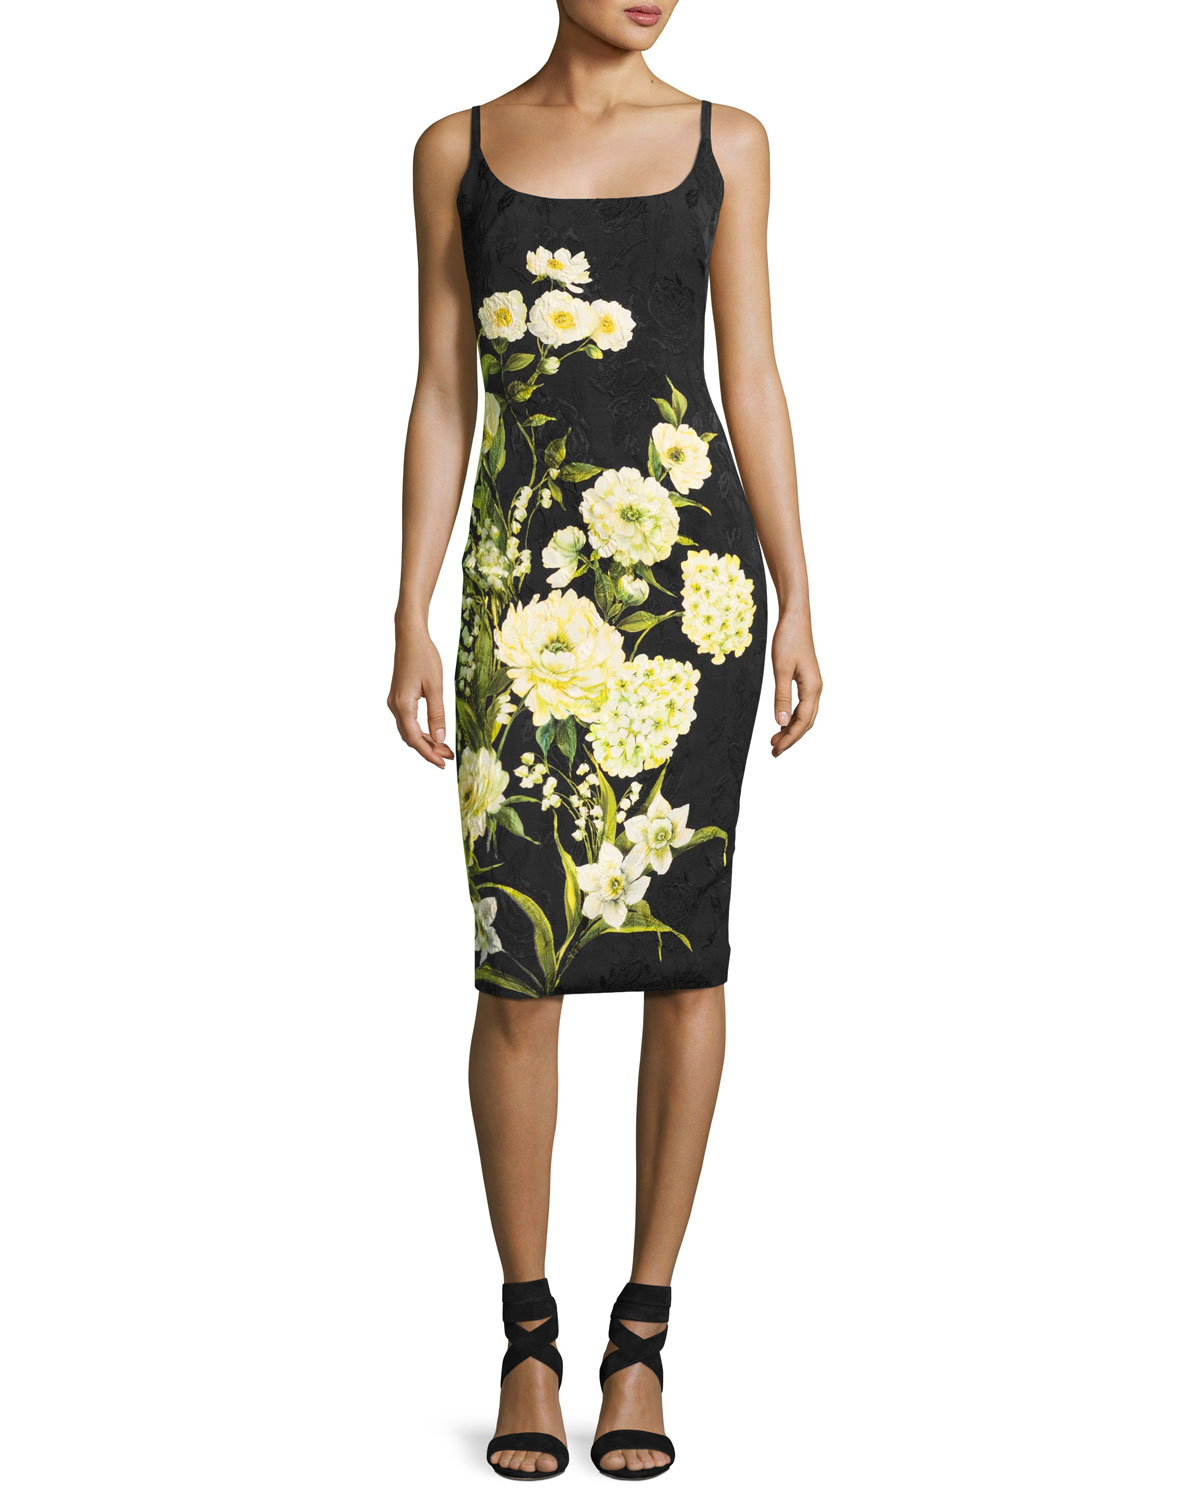 Sleeveless Floral Cocktail Dress, Black